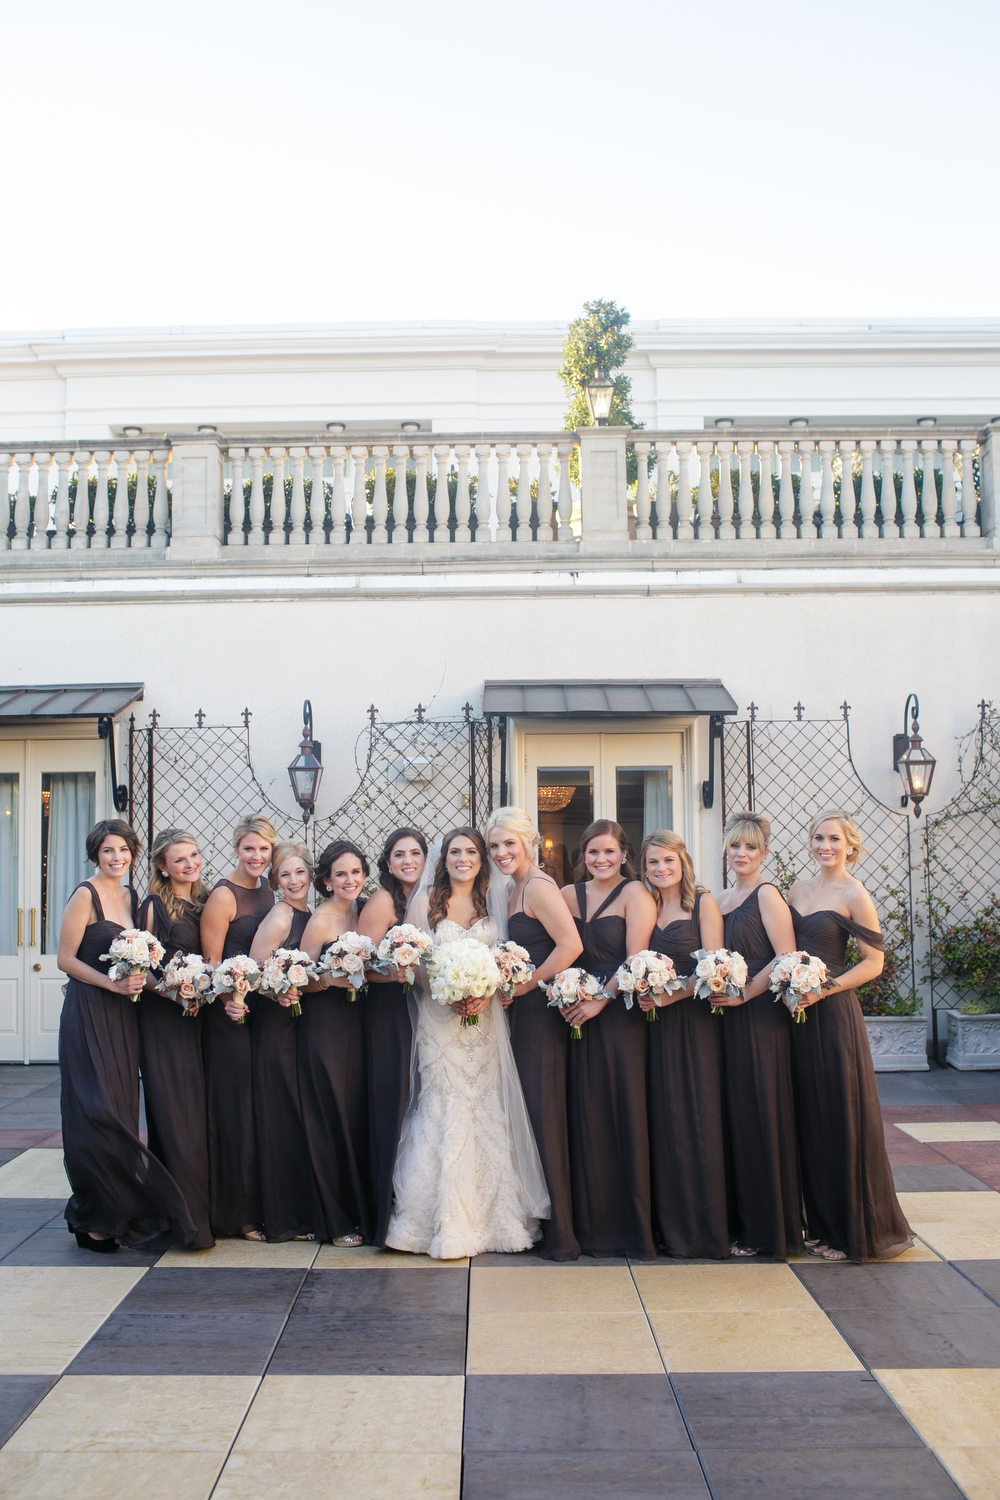 bride with bridesmaids in gray wedding dresses outside in a courtyard standing next to each other